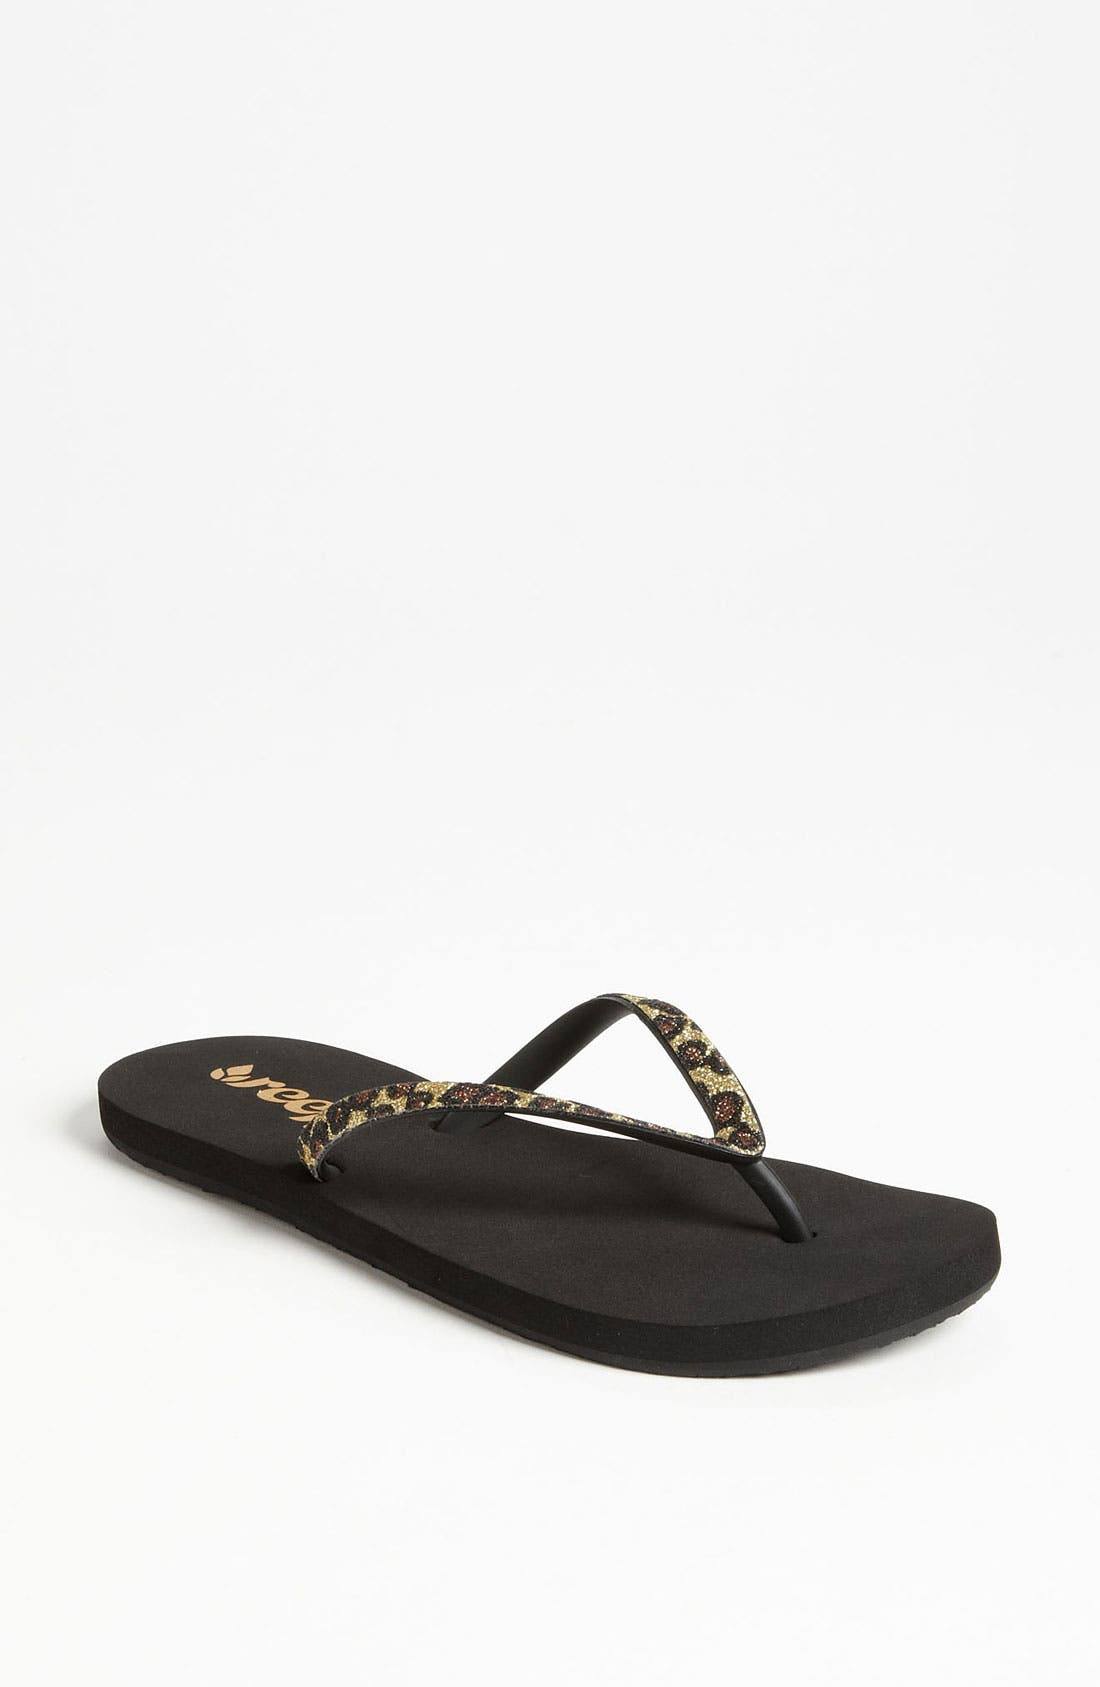 Alternate Image 1 Selected - Reef 'Stargazer Luxe' Flip Flop (Women)